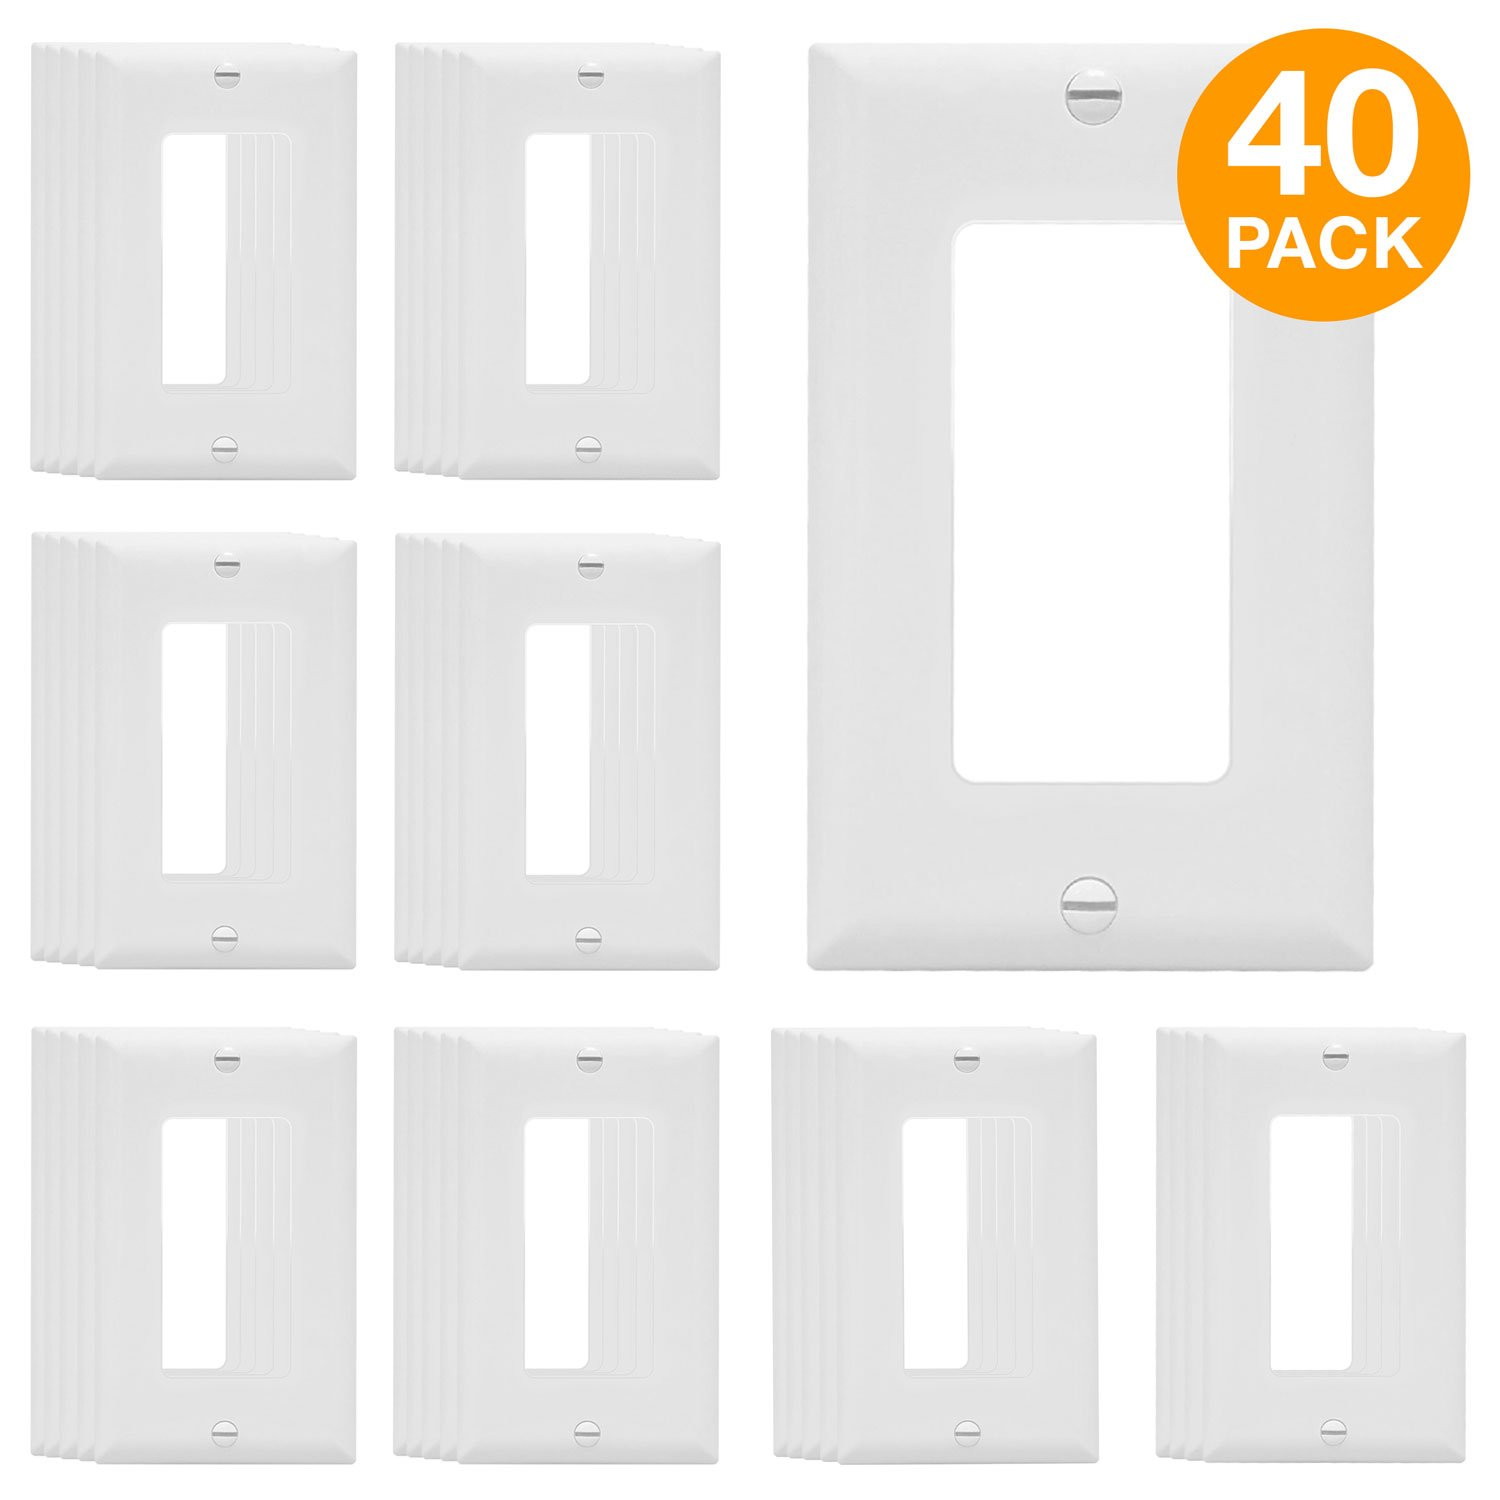 ENERLITES Decorator Light Switch or Receptacle Outlet Wall Plate, Size 1-Gang 4.50'' x 2.76'', Polycarbonate Thermoplastic, 8831-W-40PCS, White (40 Pack)